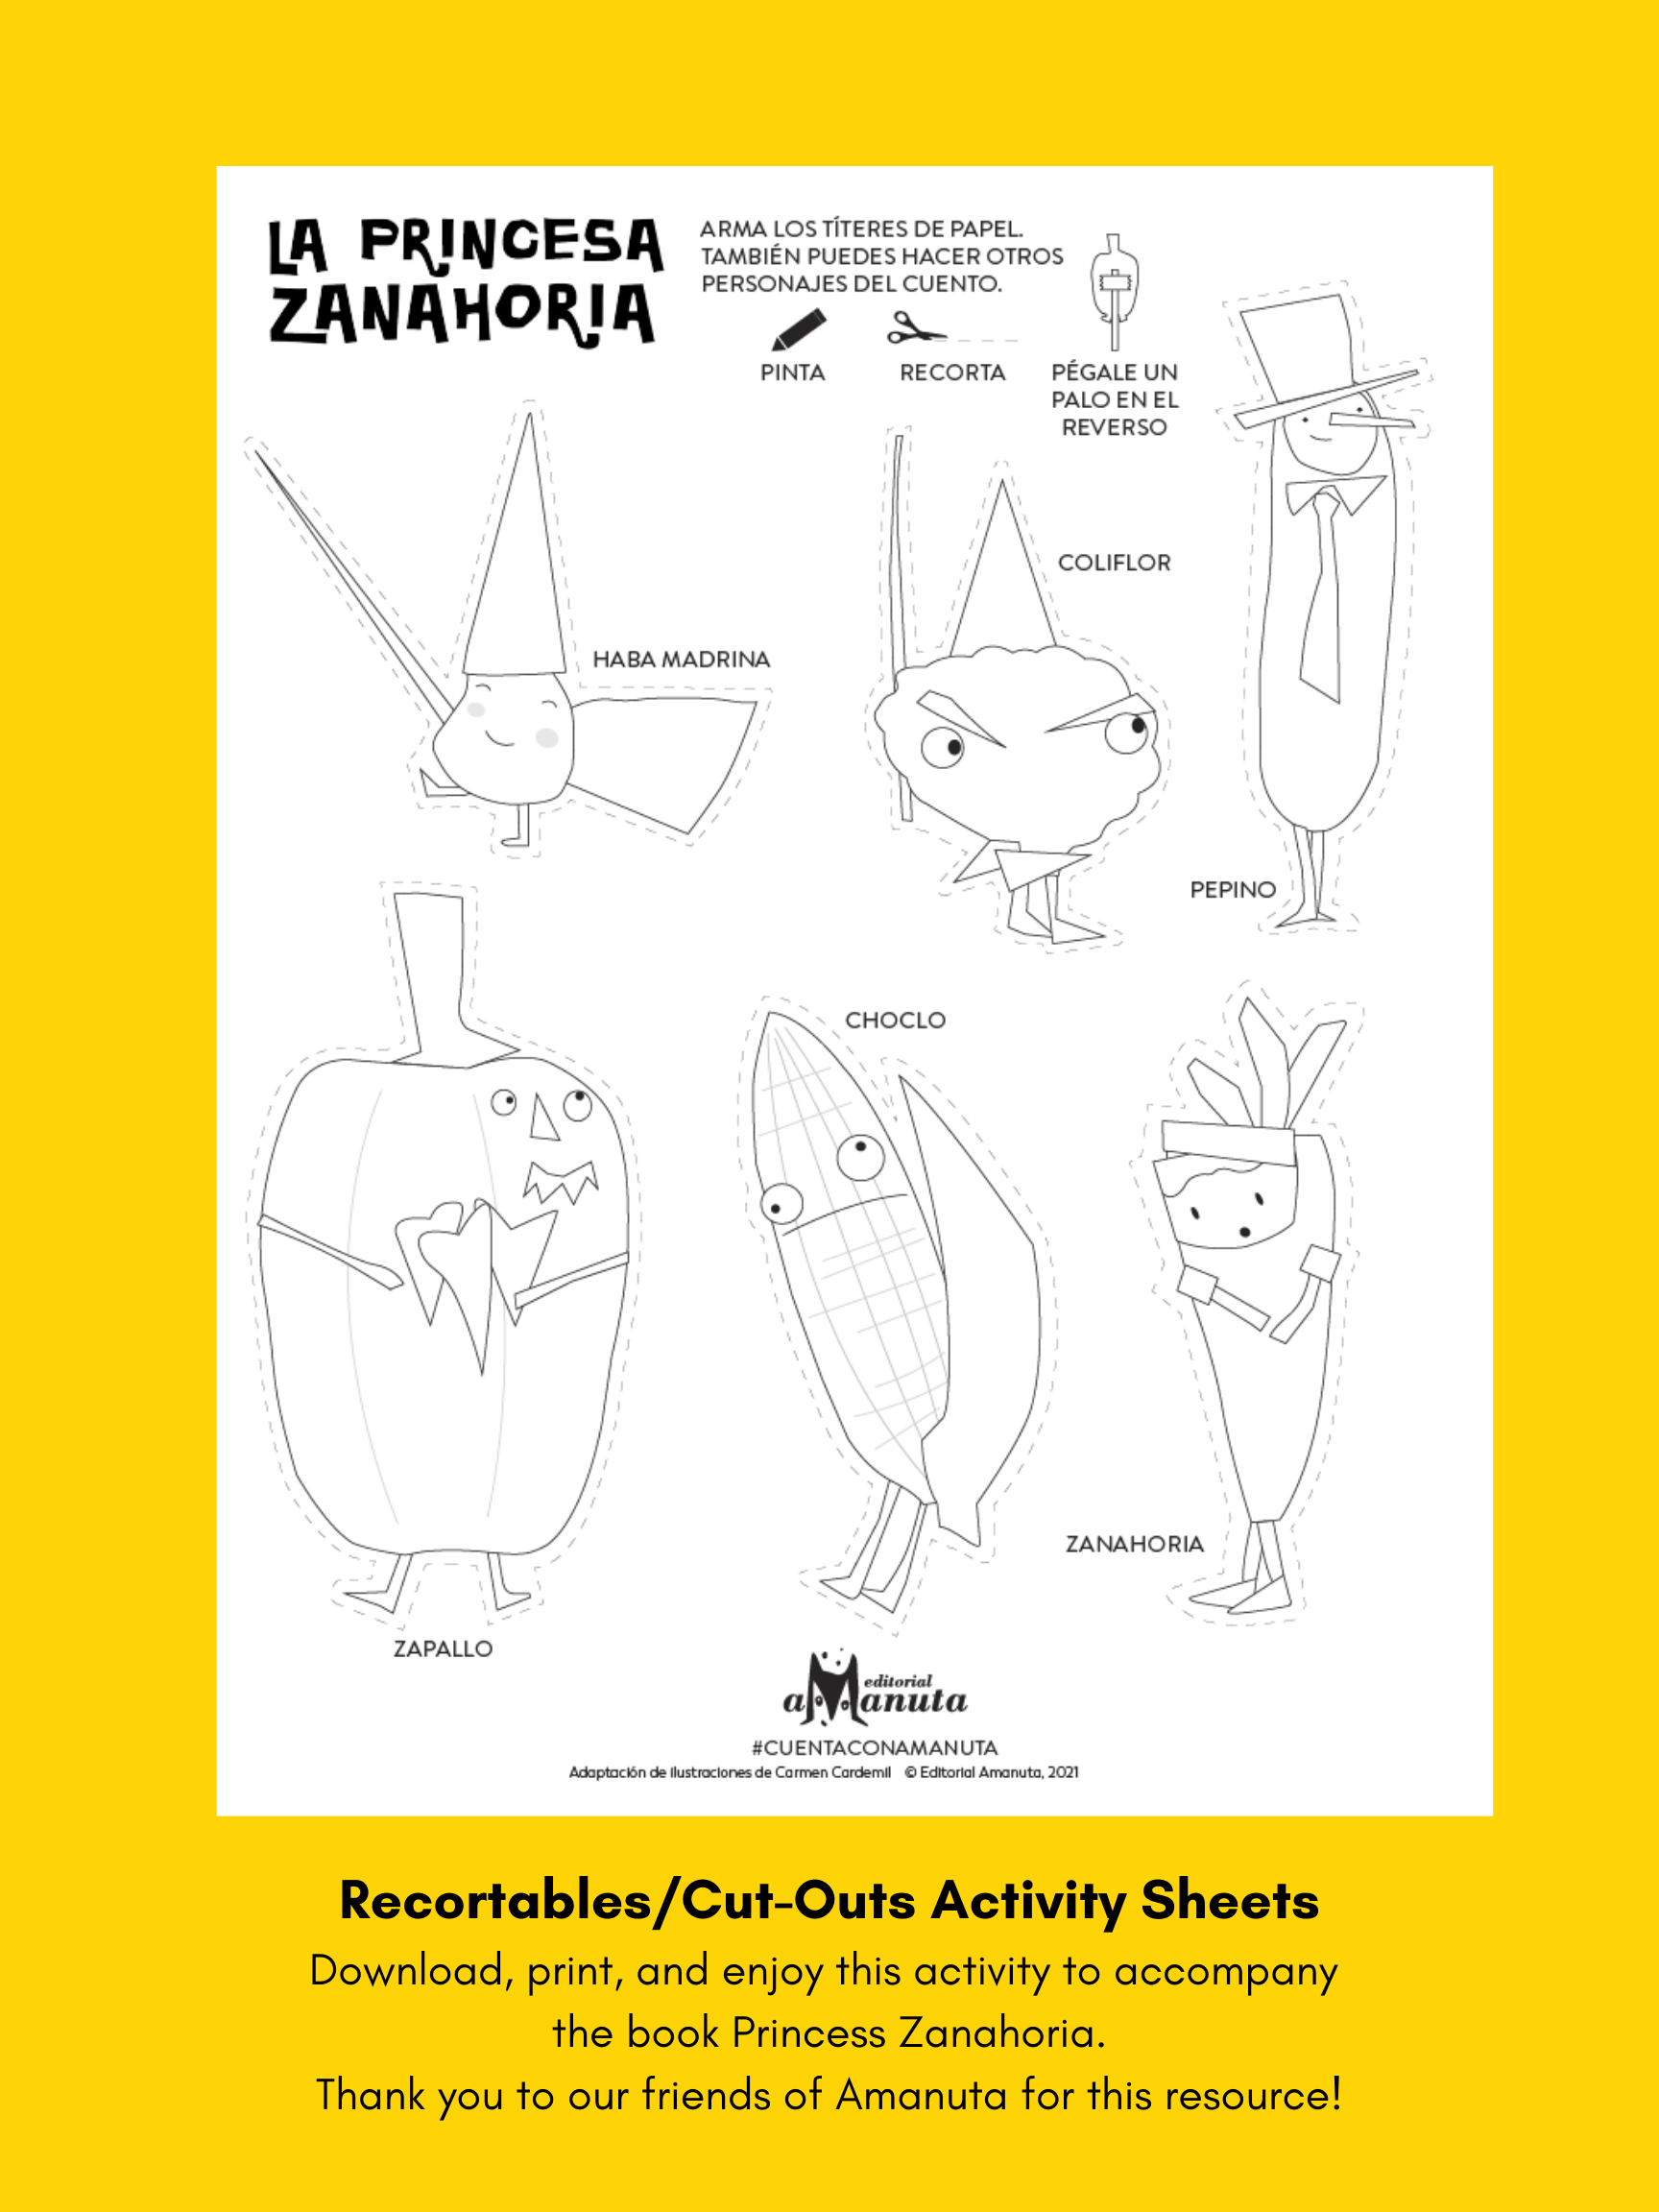 recortablescut-outs-for-princess-zanahoria-thank-you-to-our-friends-of-amanuta-for-this-resource-1-.png